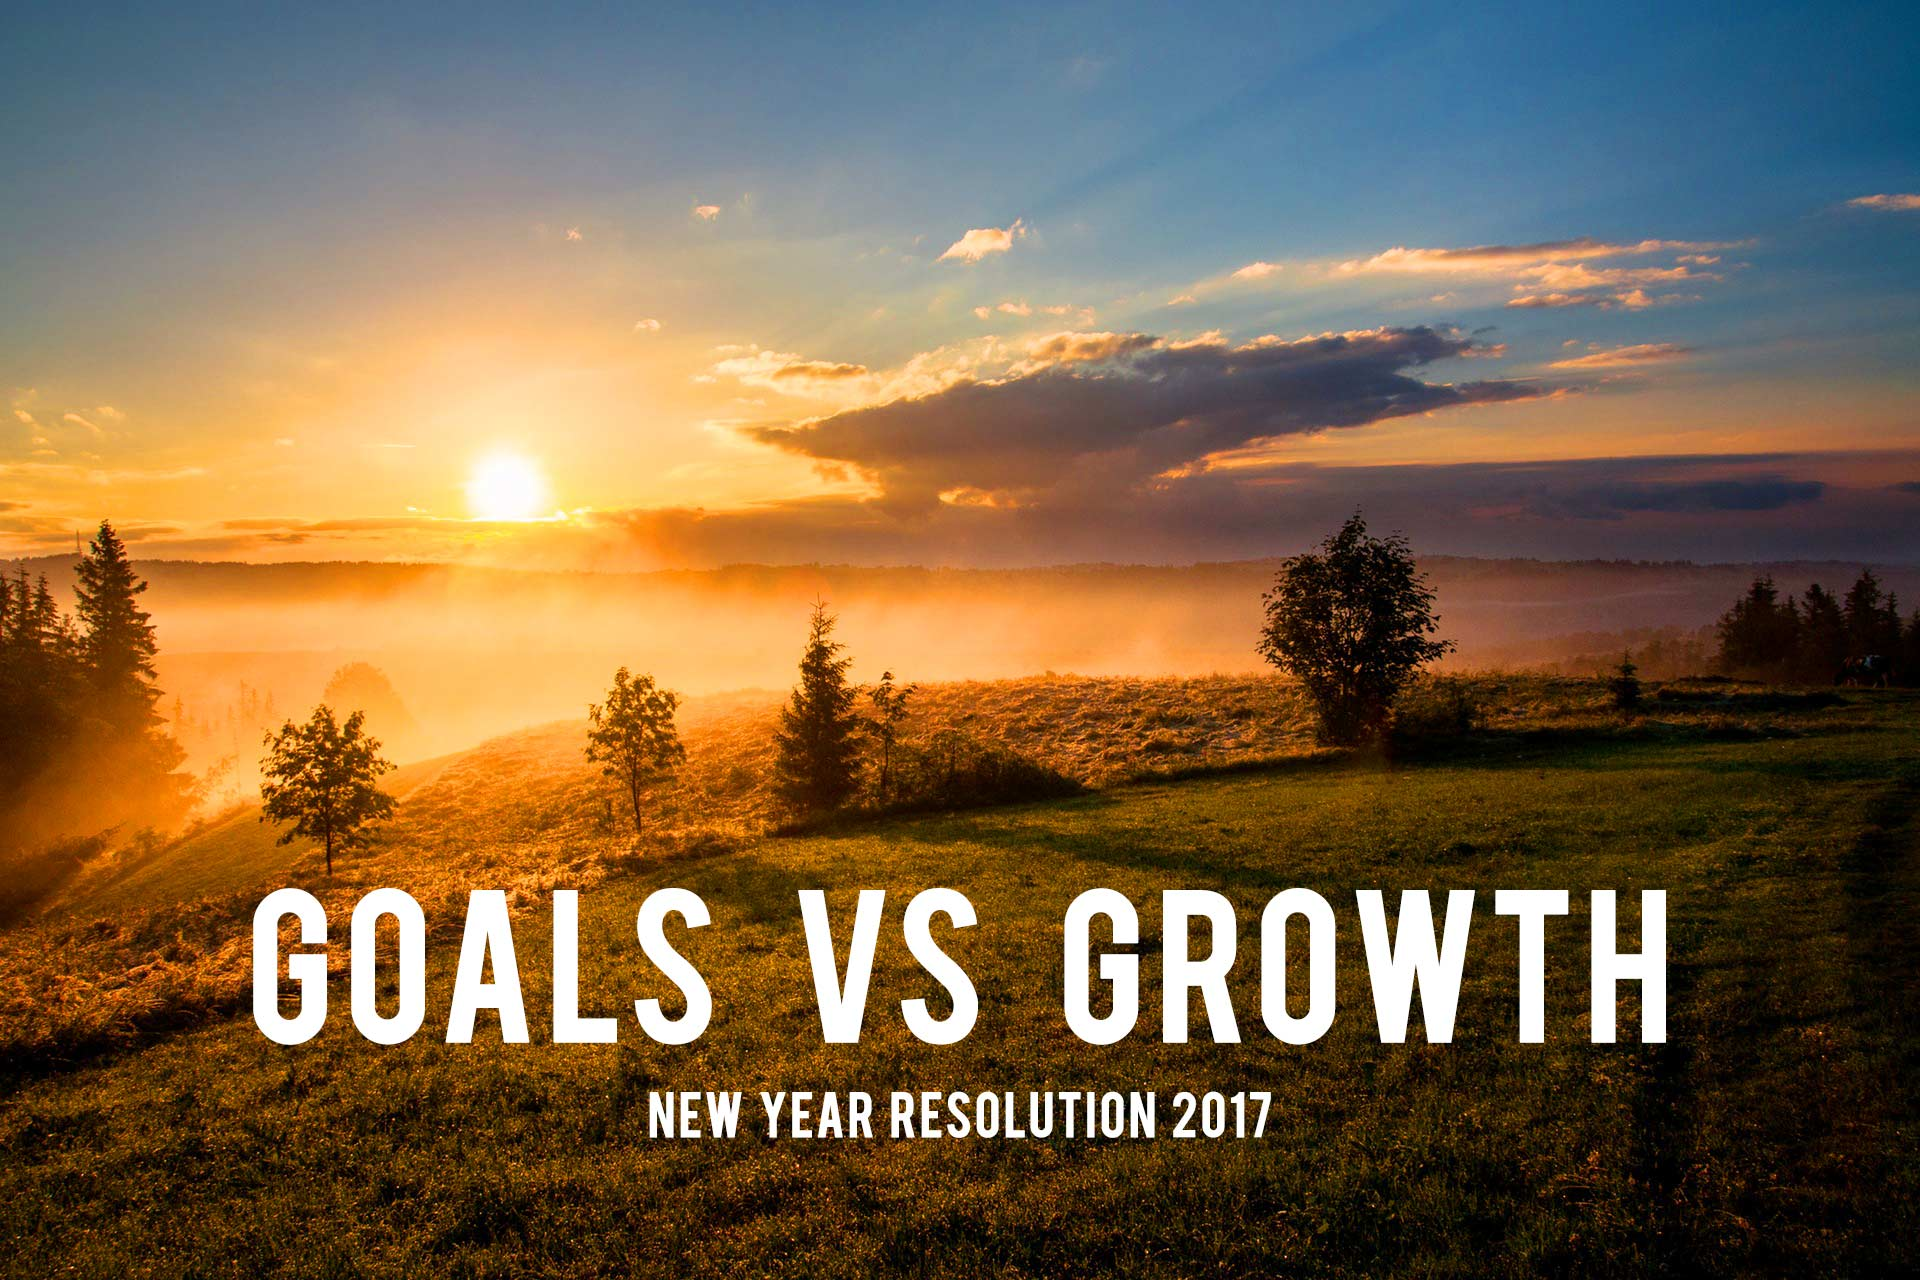 Goals VS Growth